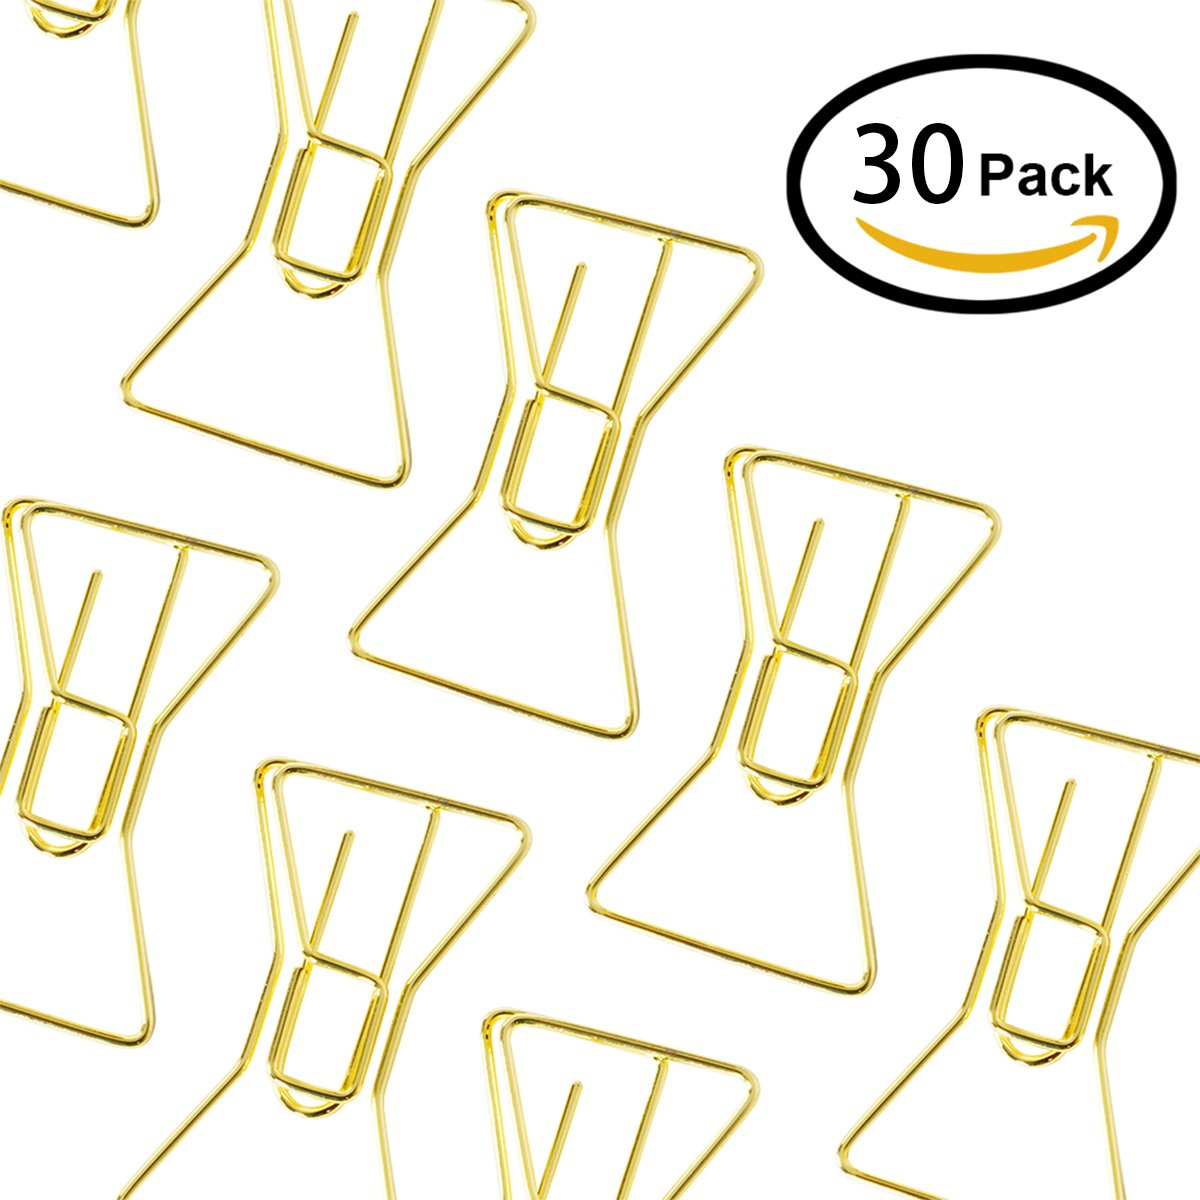 YMhome 30pcs Binder Clips Bookmarks Paperclips Photo File Document Clamps for School Kitchen Home Creative Office Supplies with Storage Case Colored Plated Gold Bow Tie